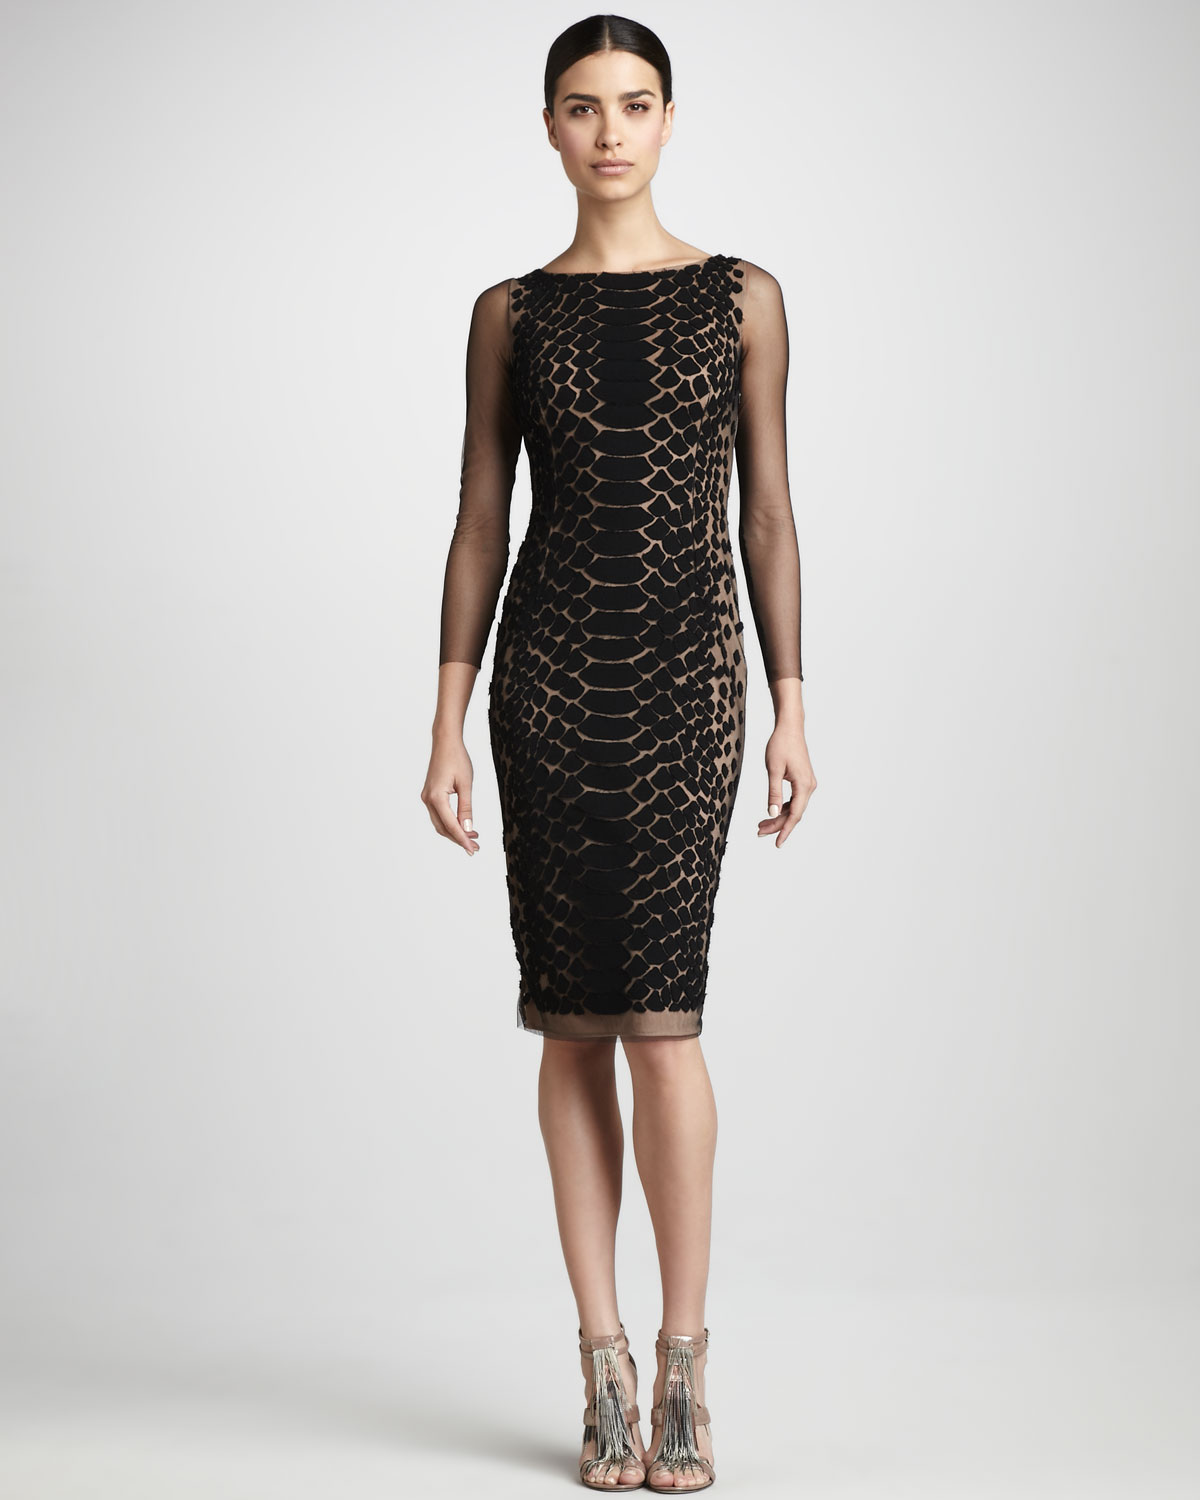 Carmen marc valvo Snakeskinprint Cocktail Dress in Black | Lyst